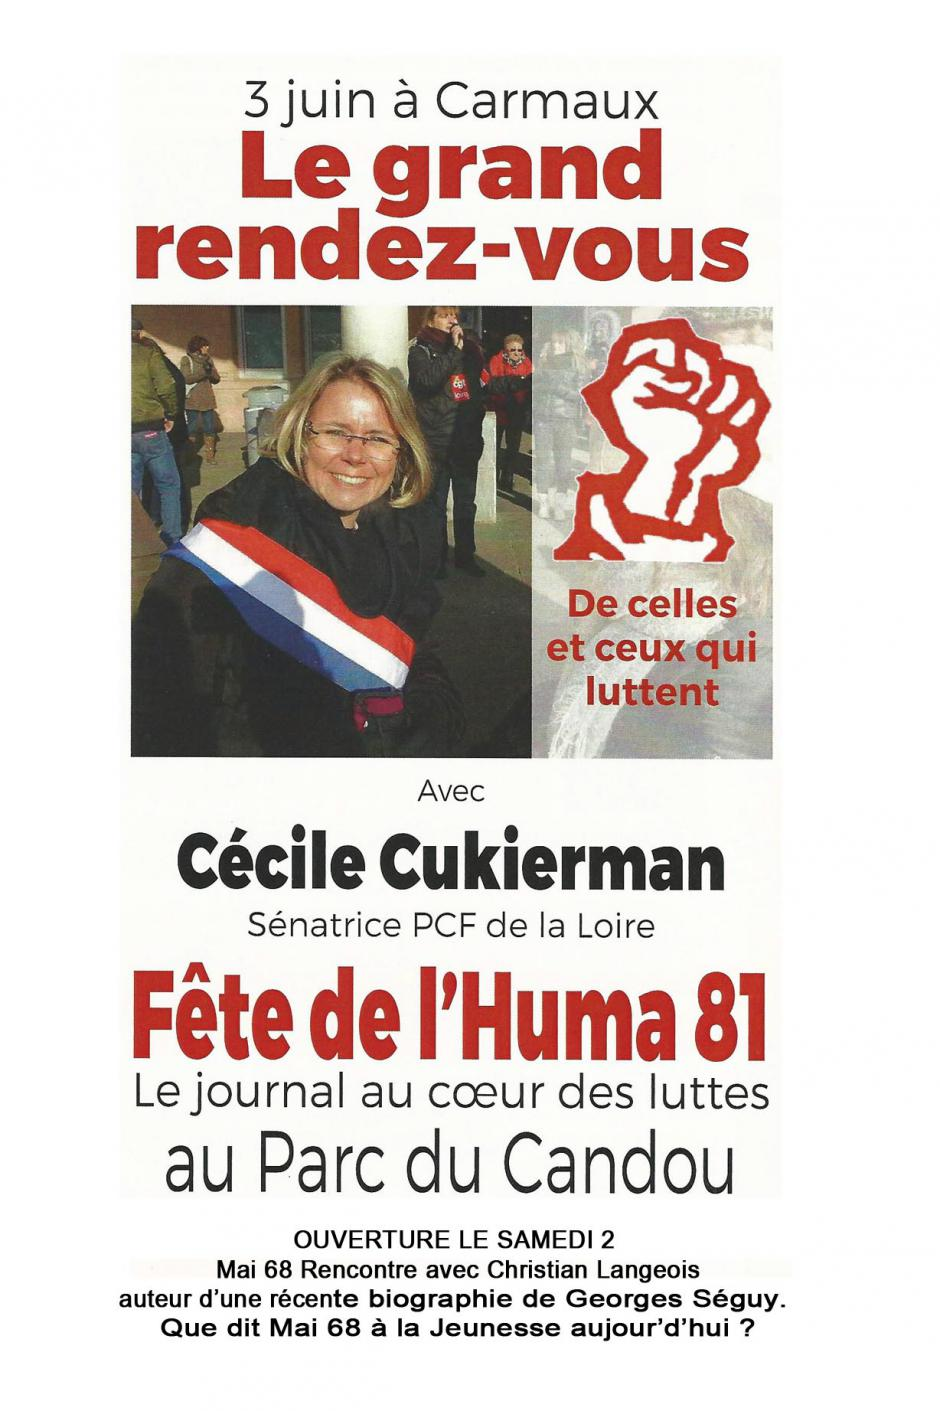 FETE DE L'HUMANITE 81